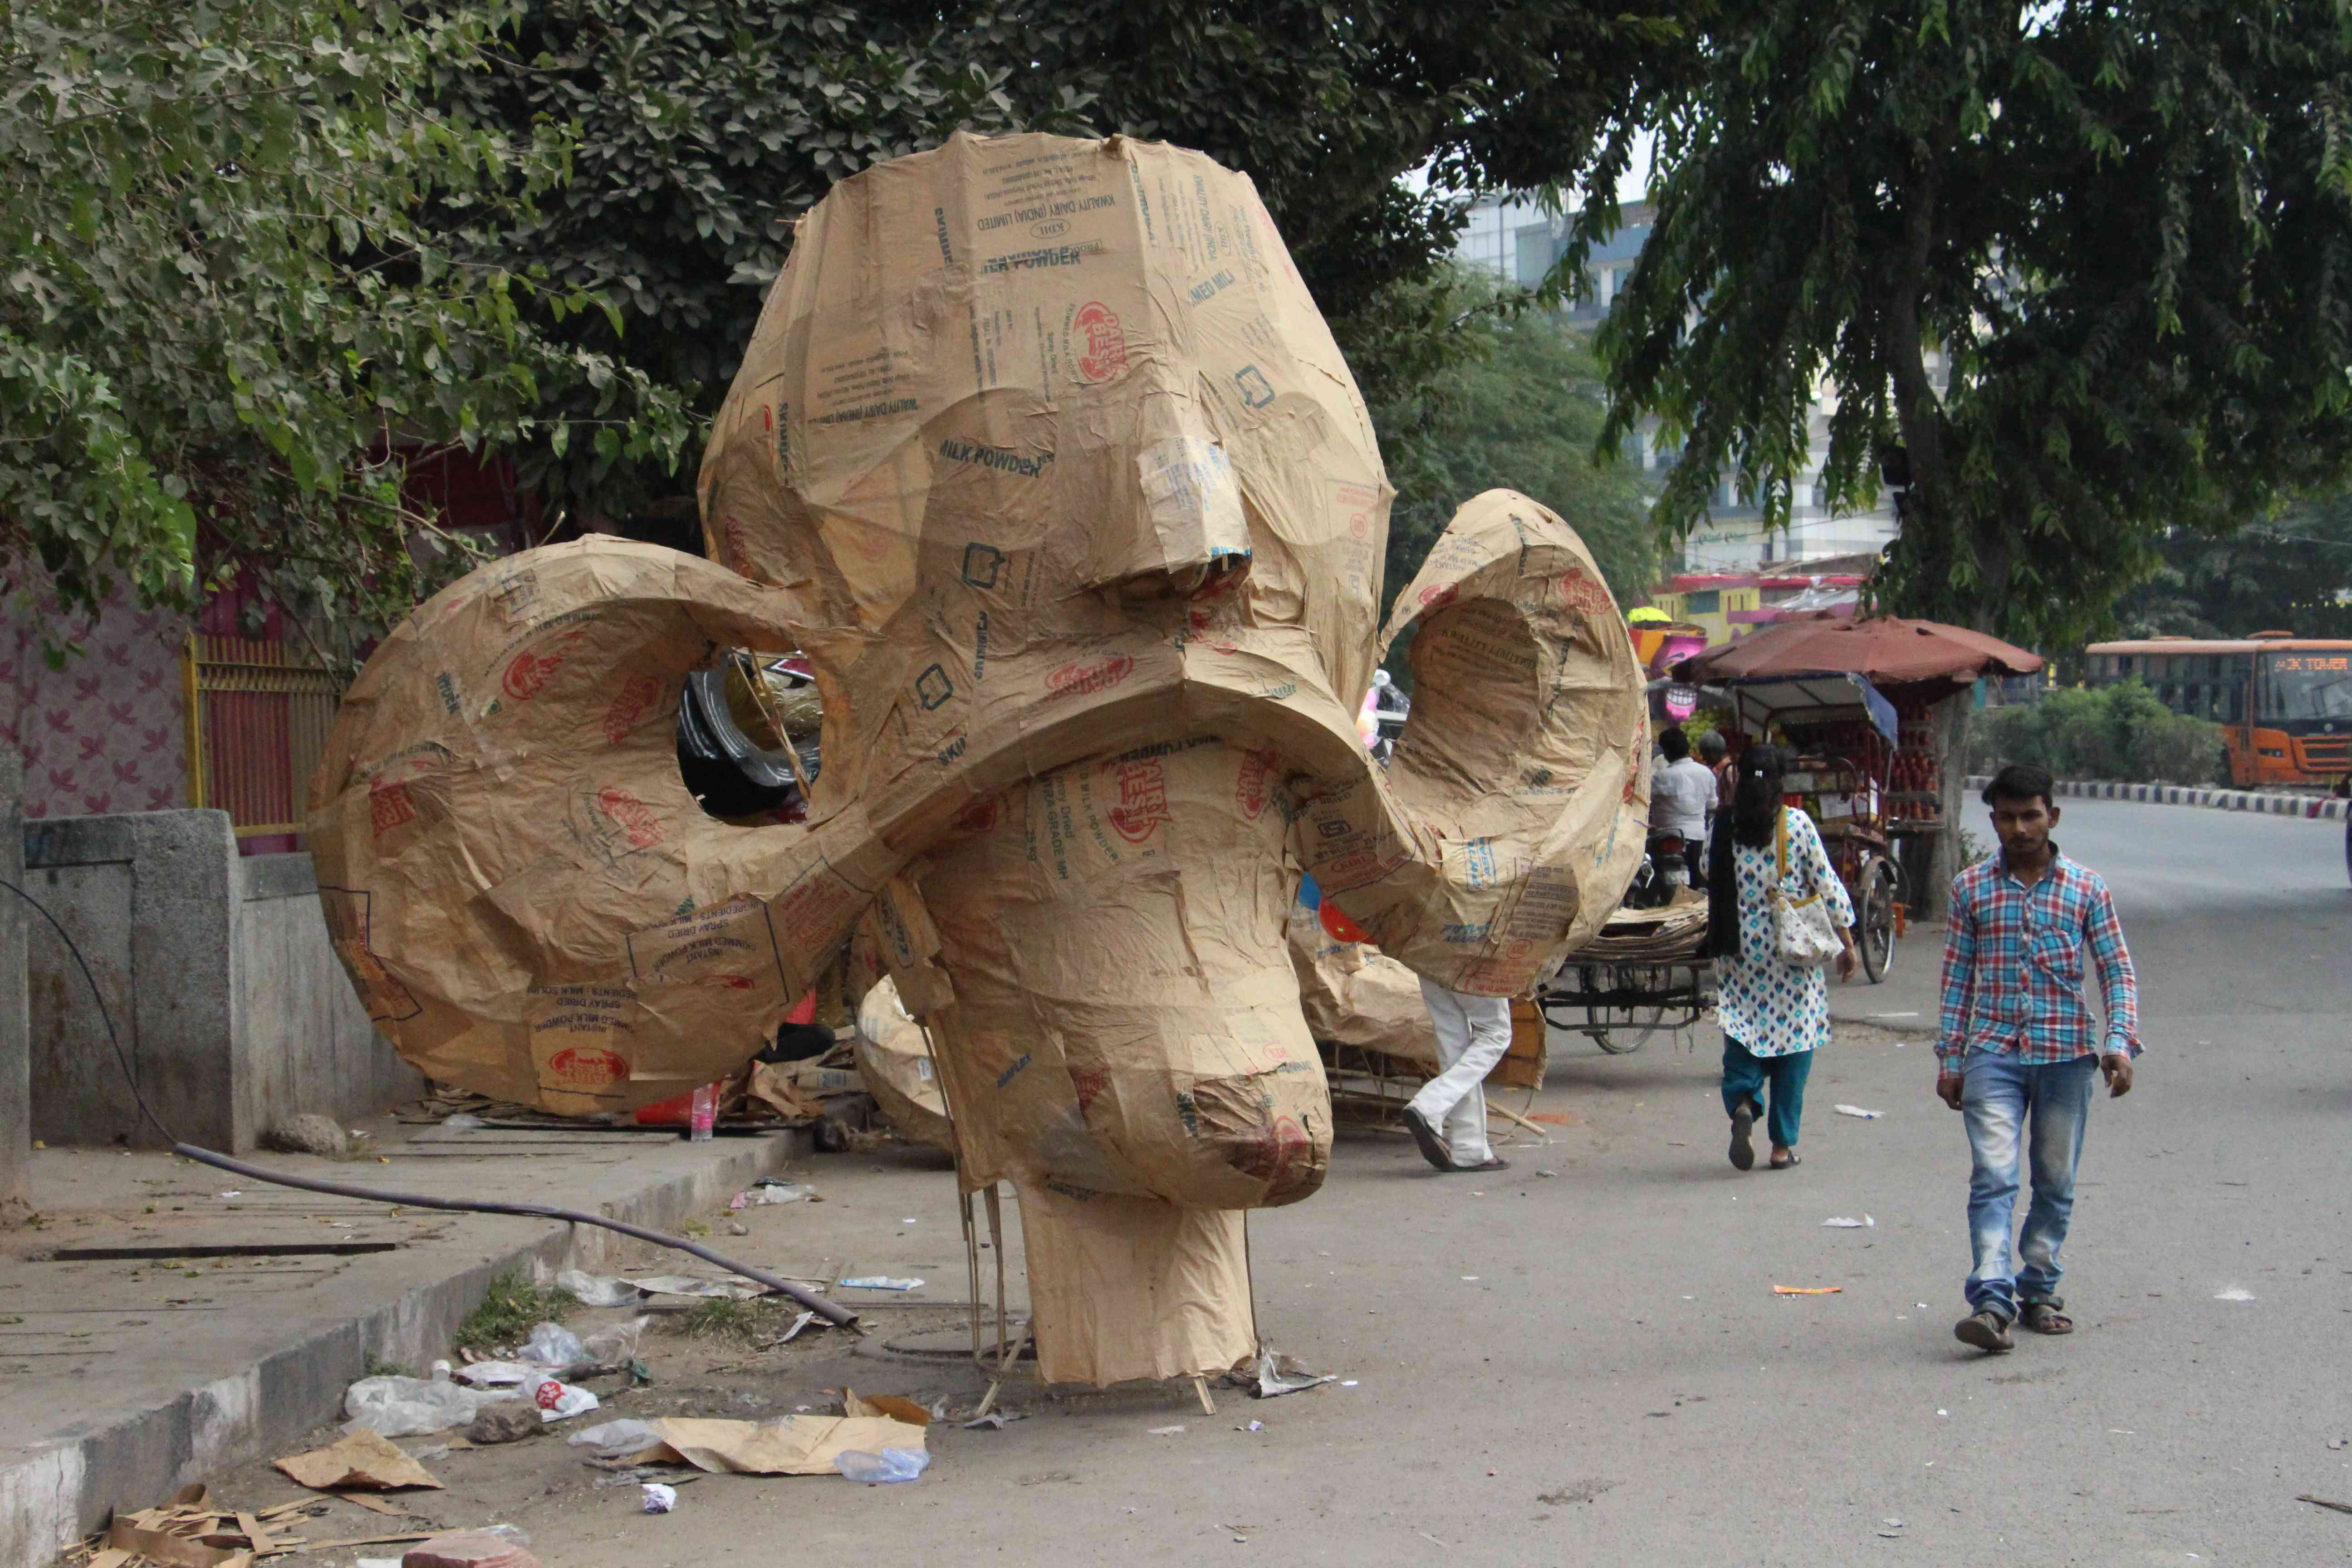 An unfinished head of Ravana lies in West Delhi's Beriwala Bagh area. The cost of the effigies depend on its size. Those as tall as 60 feet can cost upto Rs 40,000 per piece.